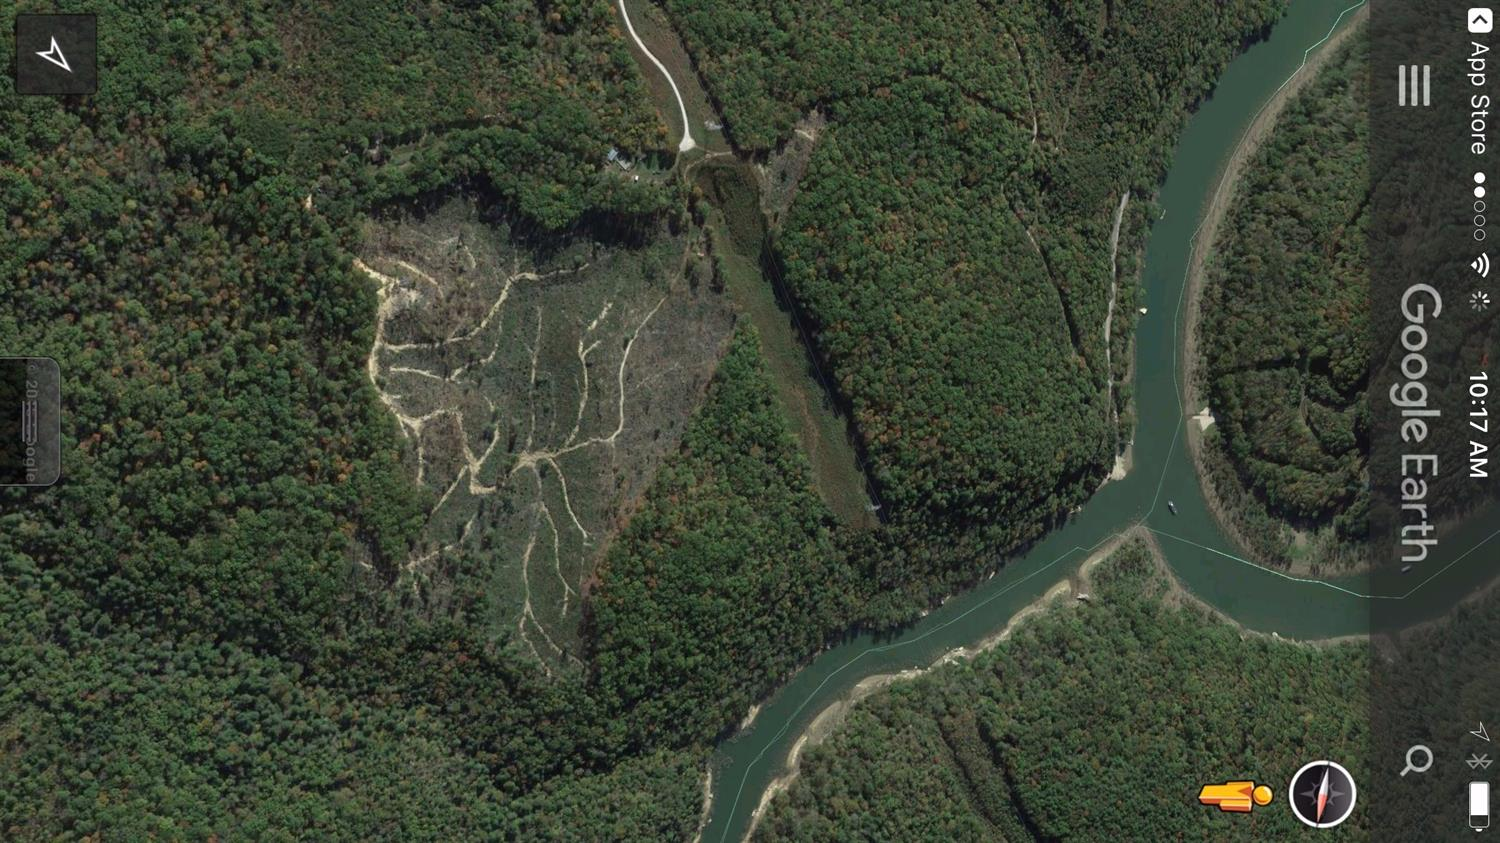 1111 FOREST SERVICE 100 ROAD, CORBIN, KY 40701